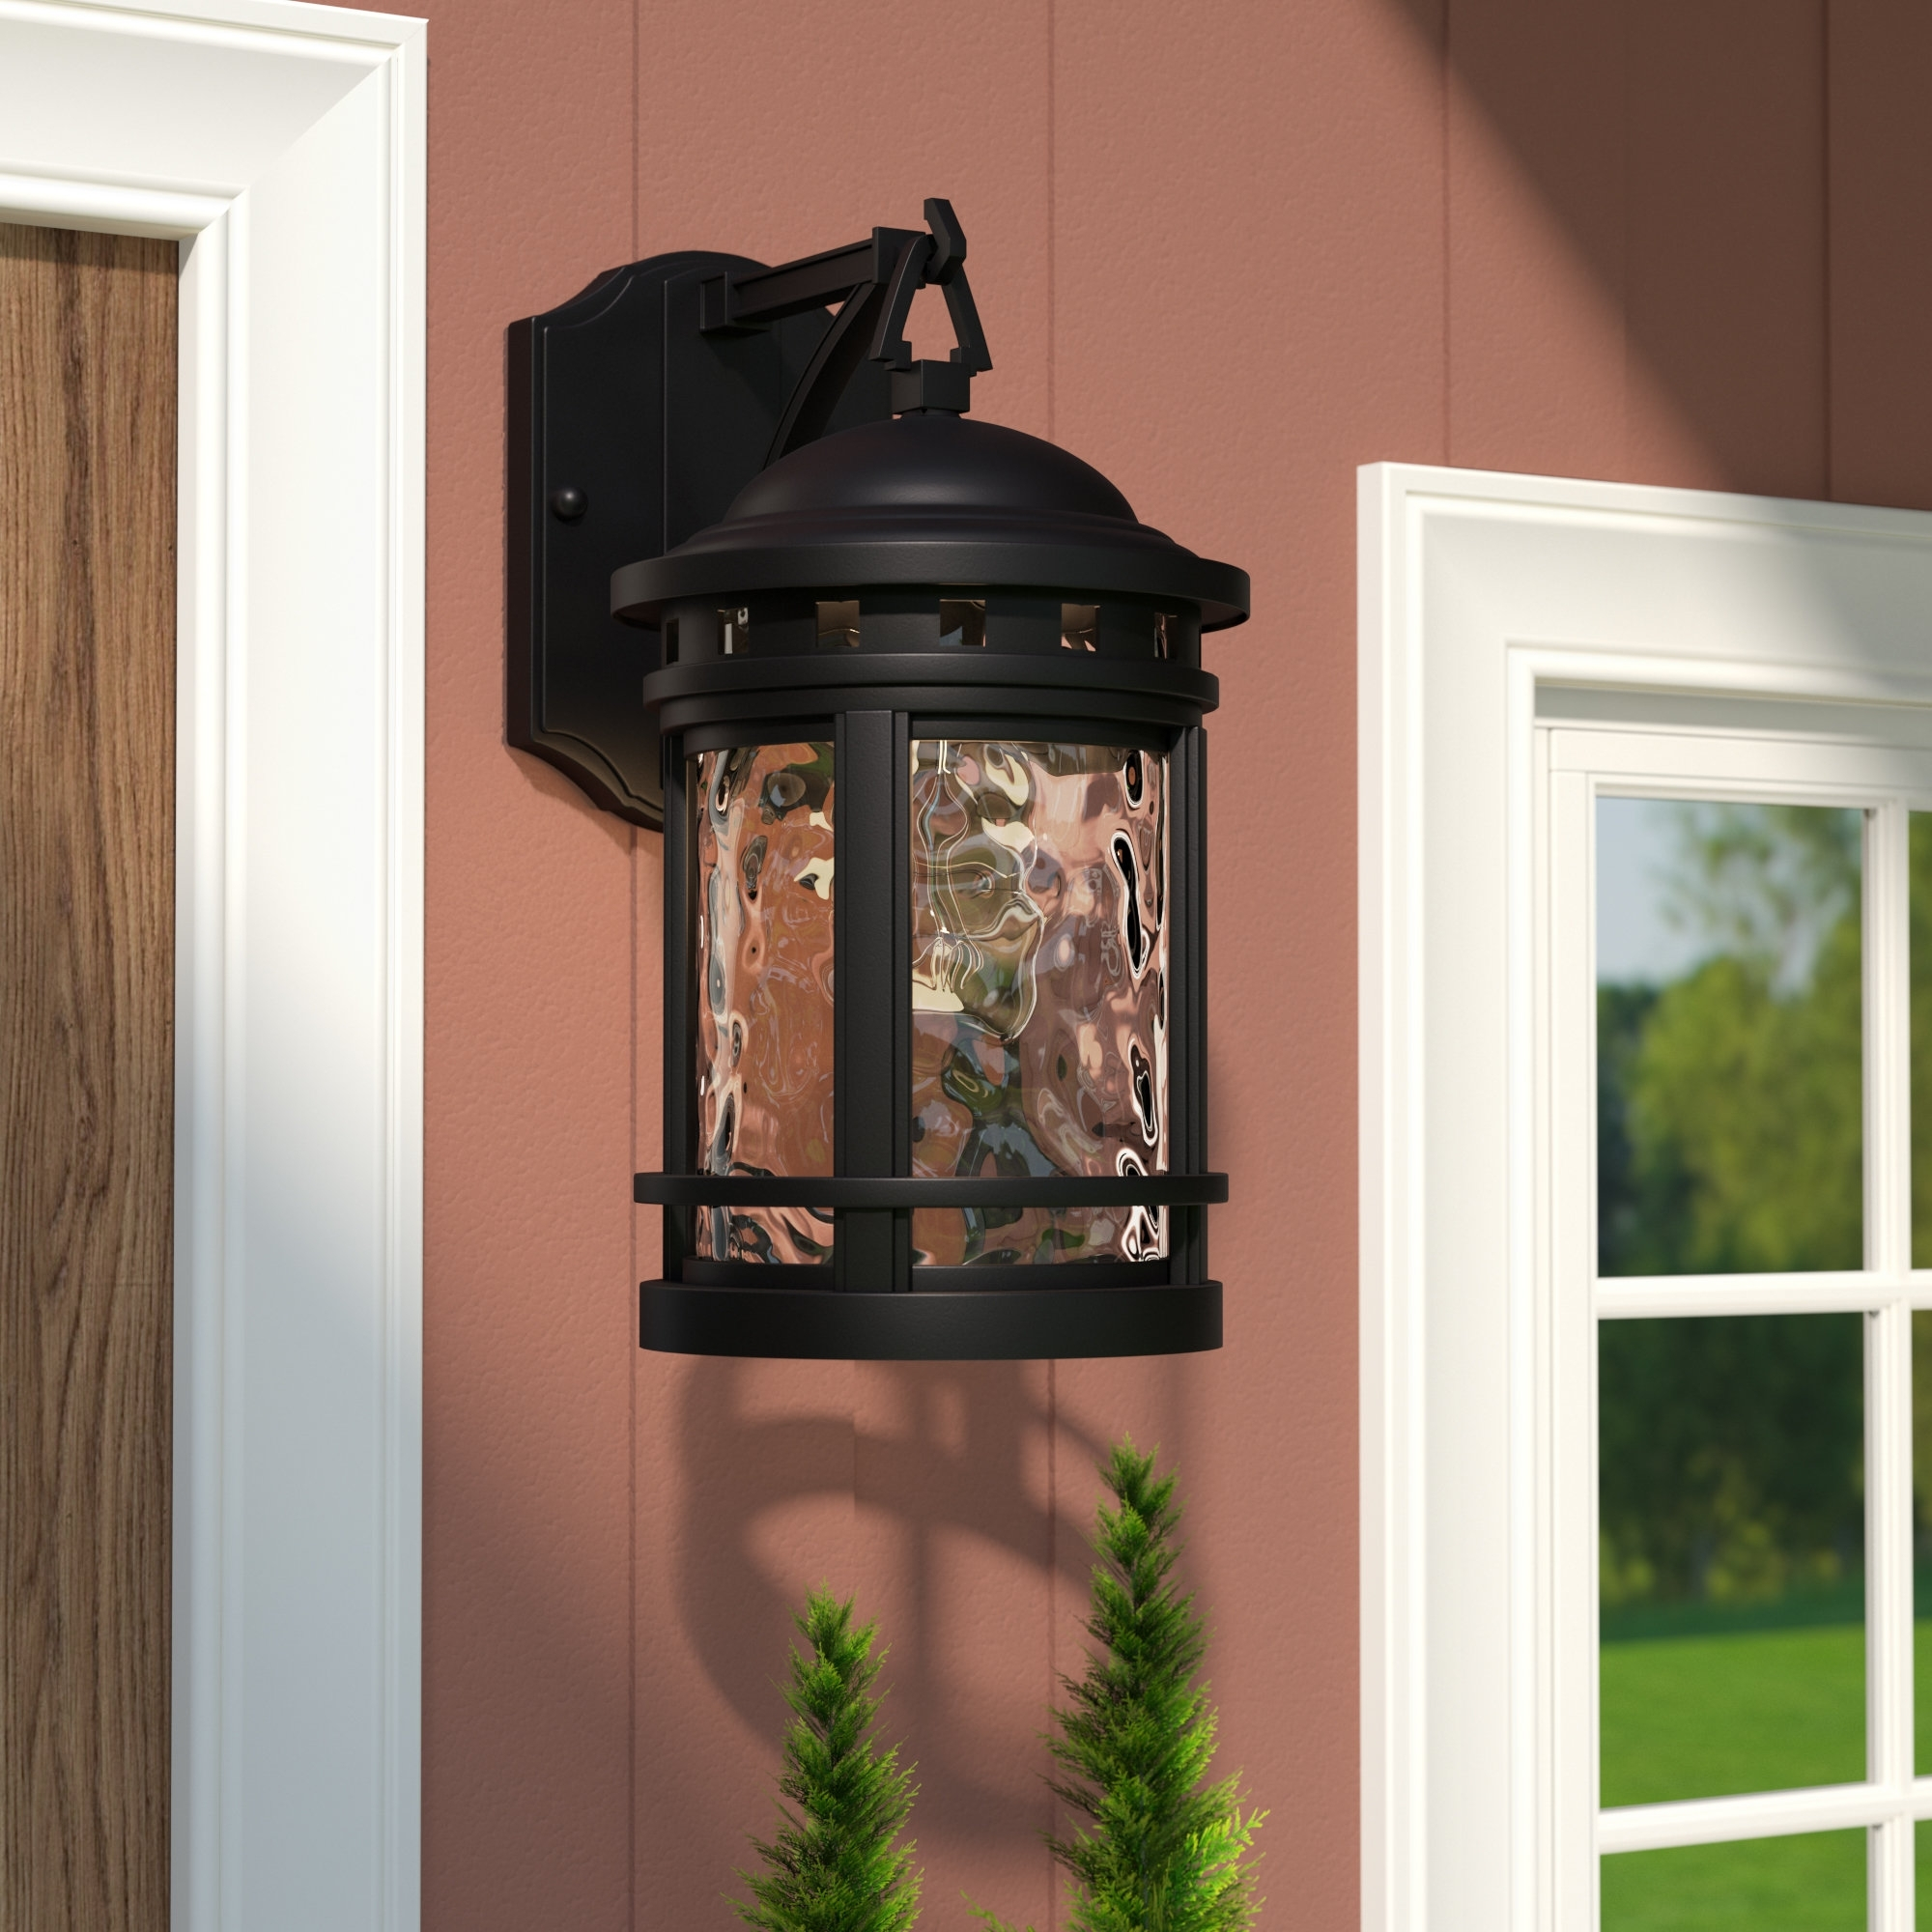 Loon Peak Ashberry 1 Light Outdoor Wall Lantern & Reviews | Wayfair With Regard To Outdoor Vinyl Lanterns (View 11 of 20)